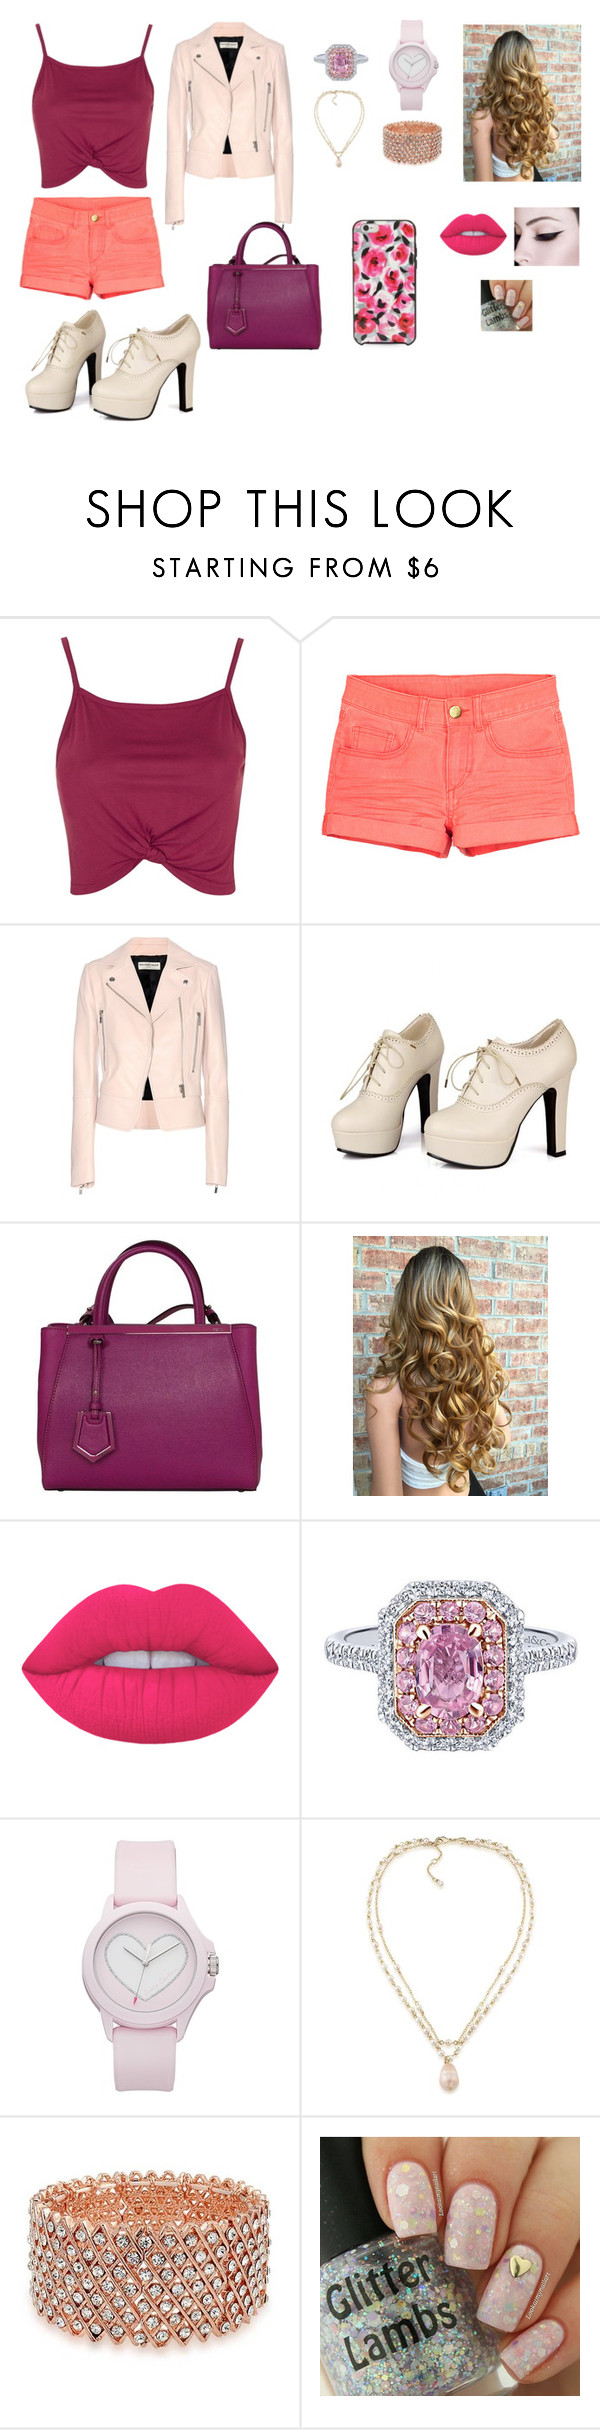 """""""PINK"""" by klaudija369 on Polyvore featuring Topshop, Balenciaga, Sidewalk, Fendi, Lime Crime, Juicy Couture, Carolee, Bling Jewelry and Kate Spade"""